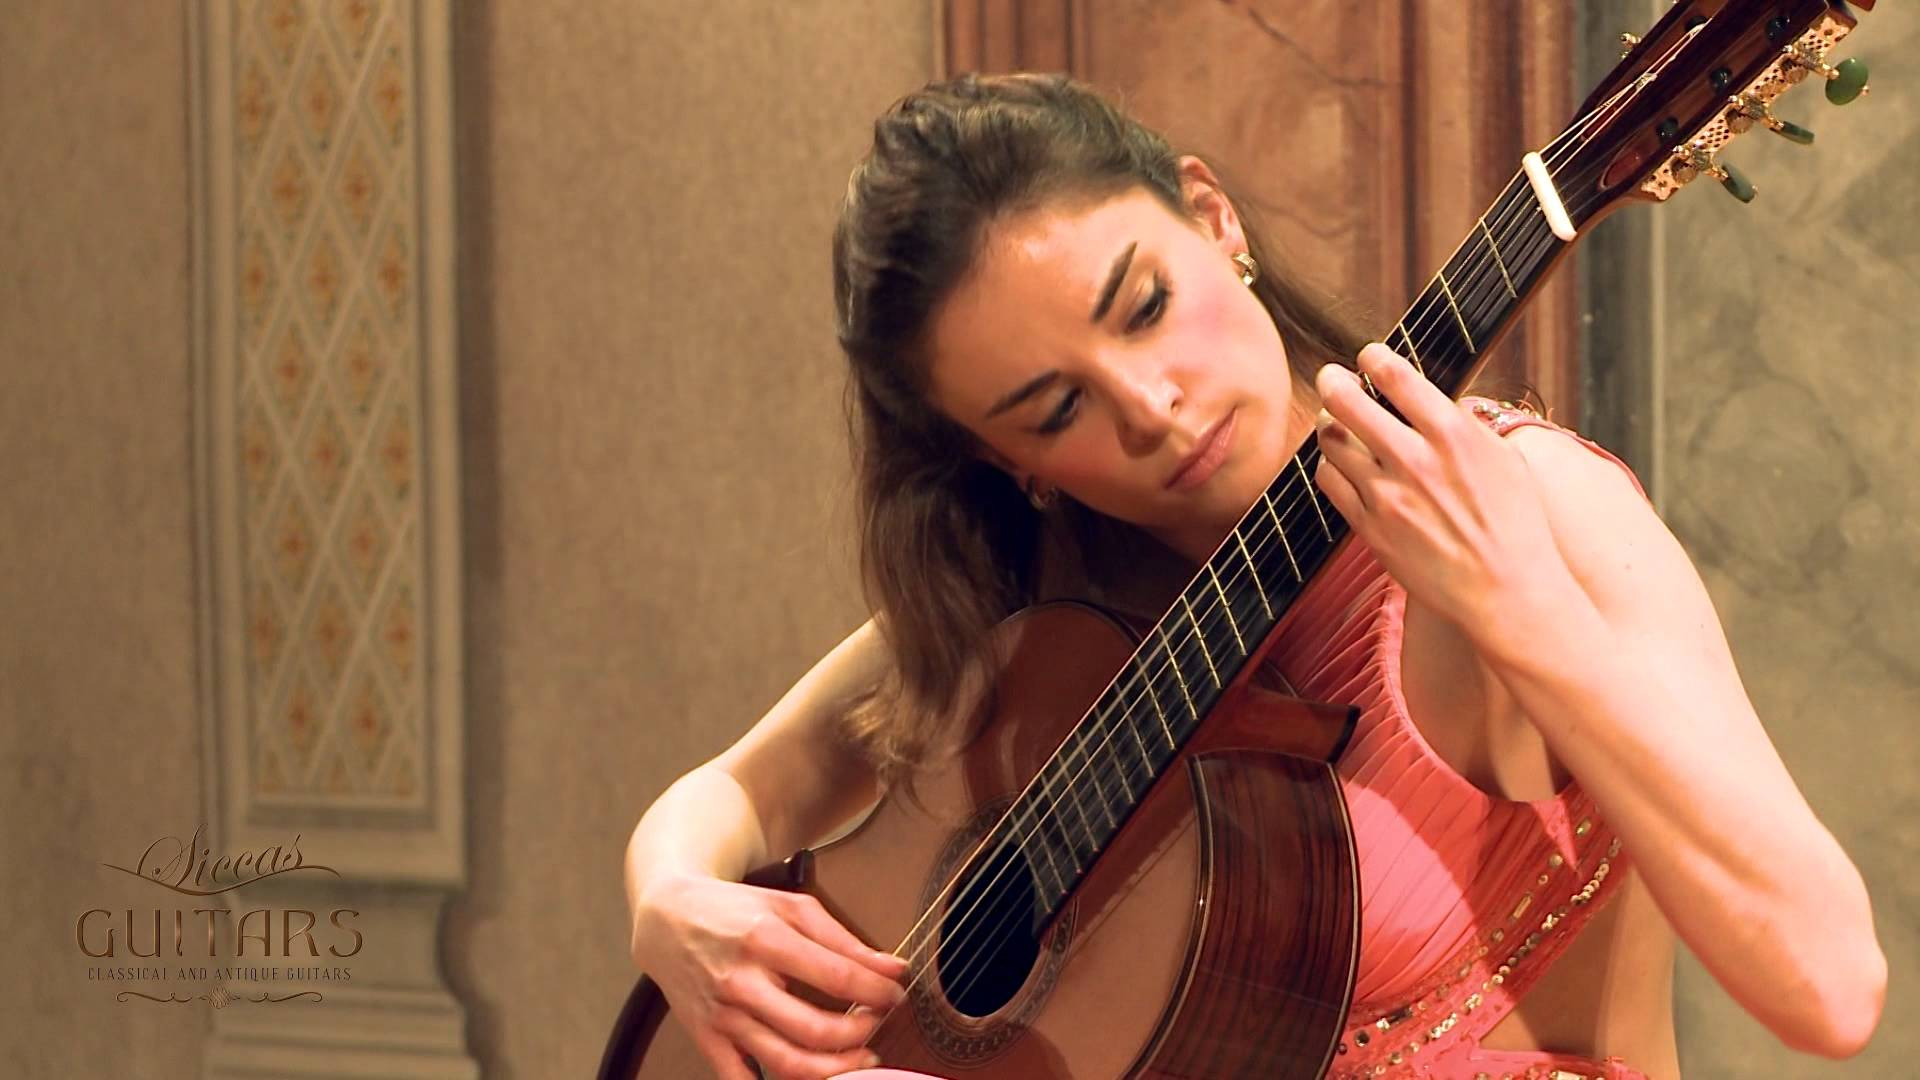 Ana Vidovic plays La Catedral by Augustn Barrios